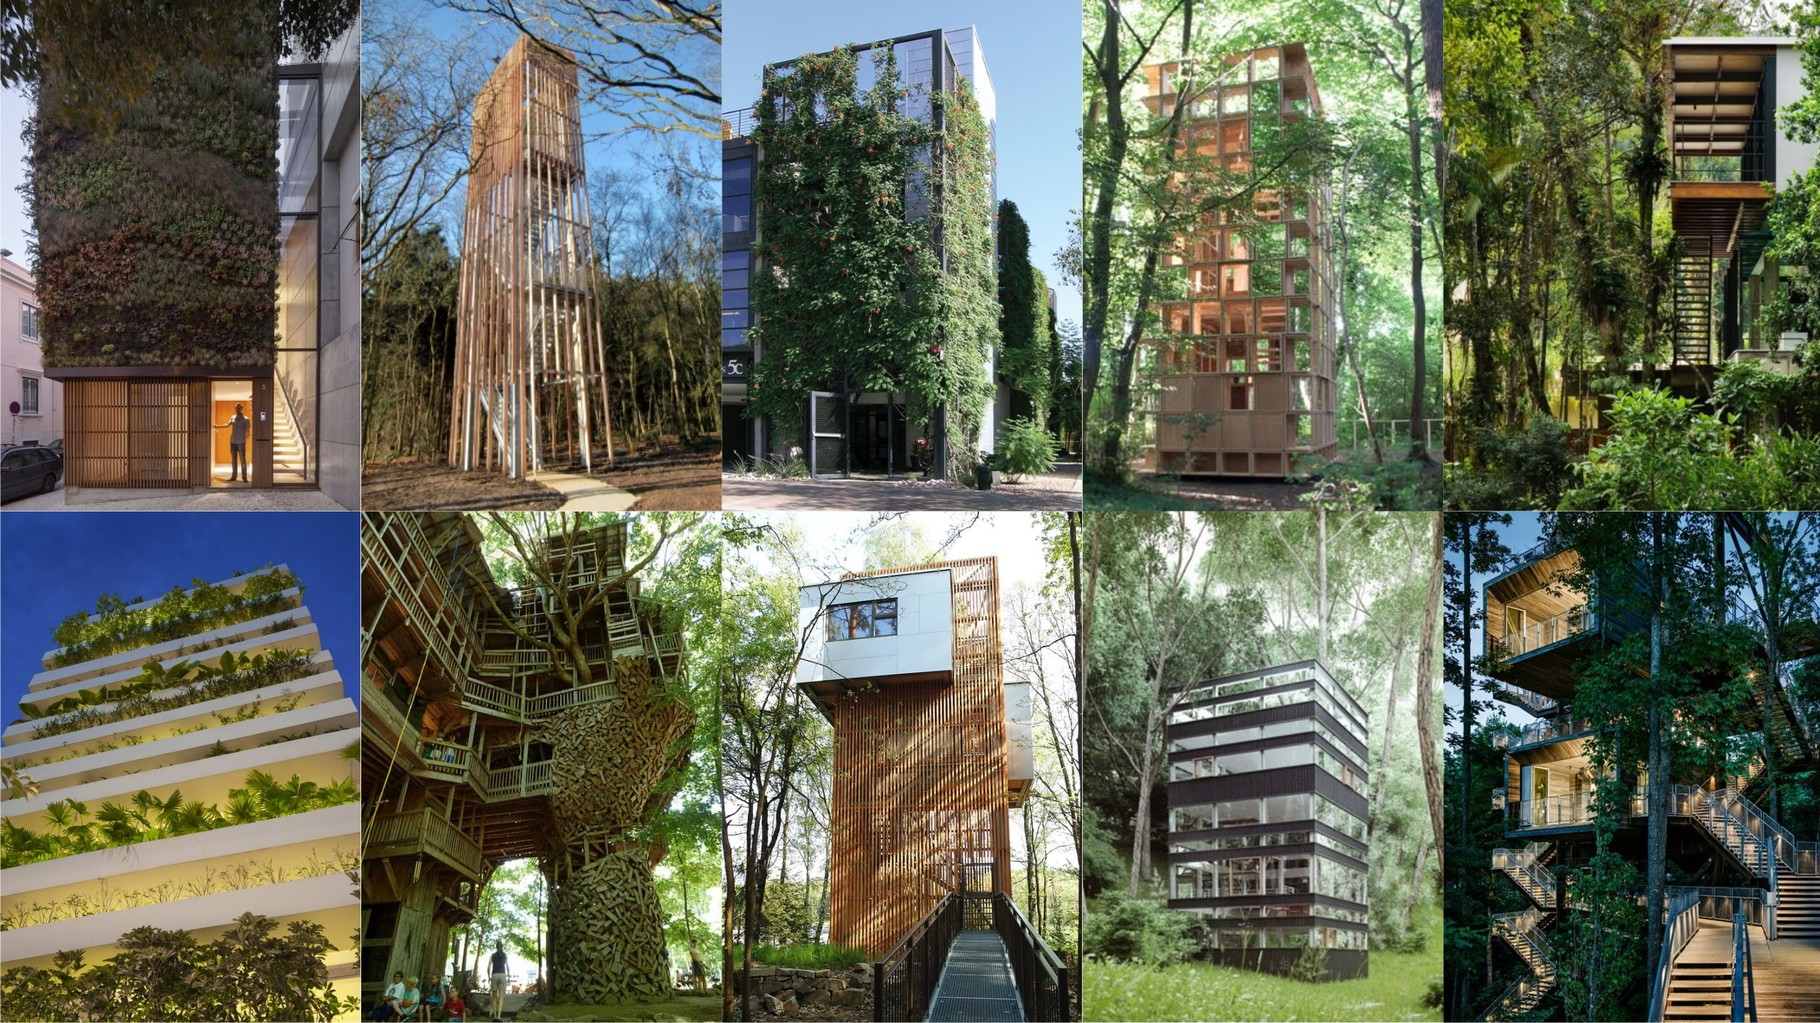 Visual OAS1S™: Attractive tree-like structures with basic and classic design.